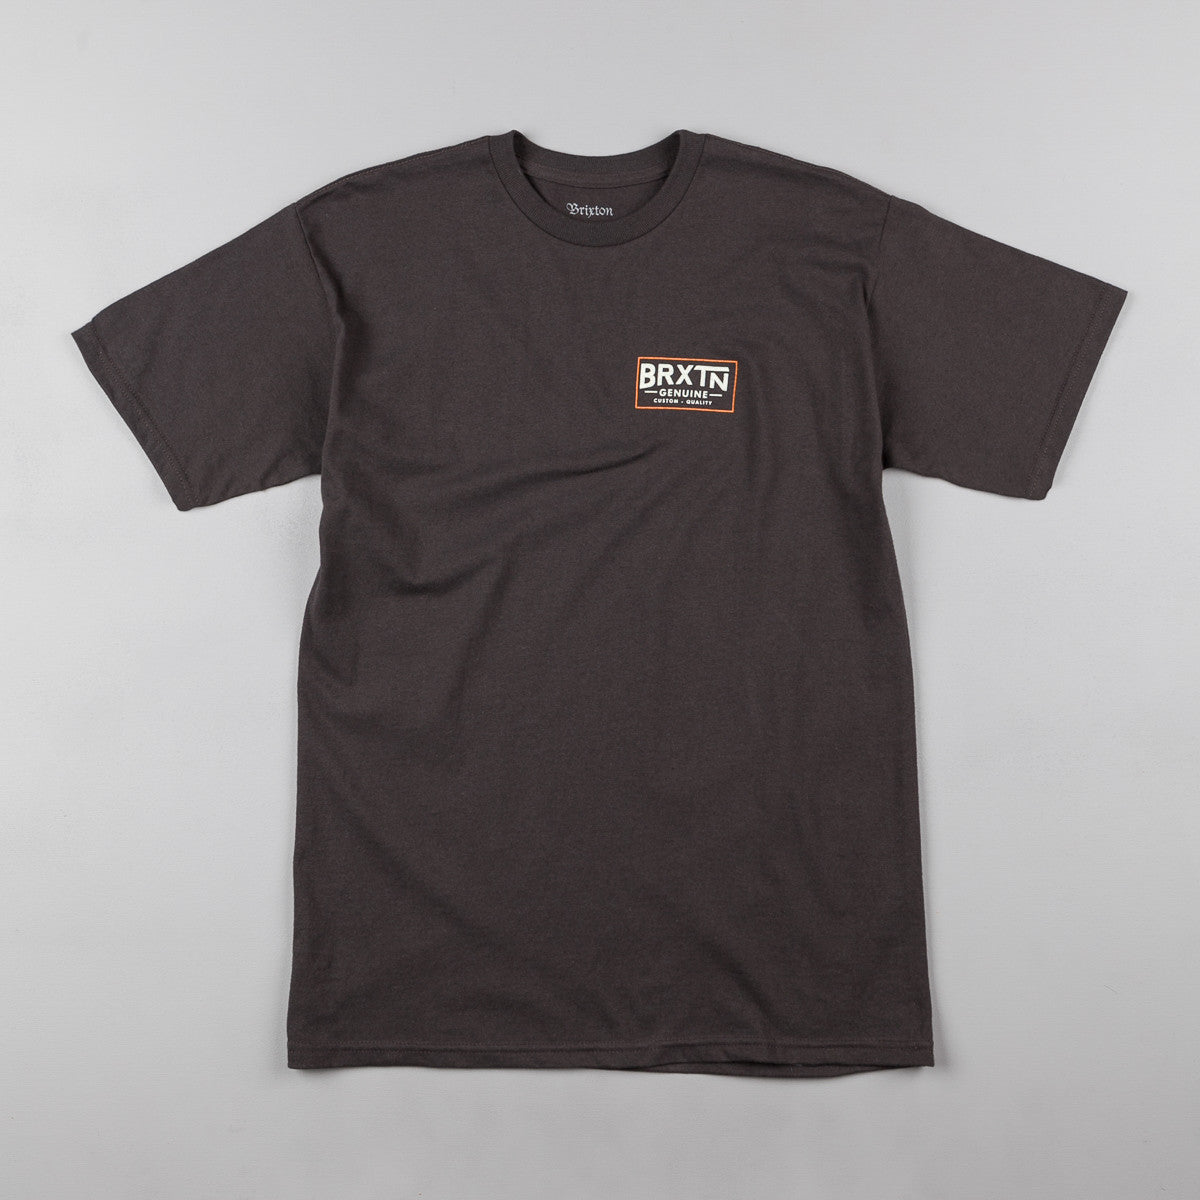 Brixton Dunning T-Shirt - Washed Black